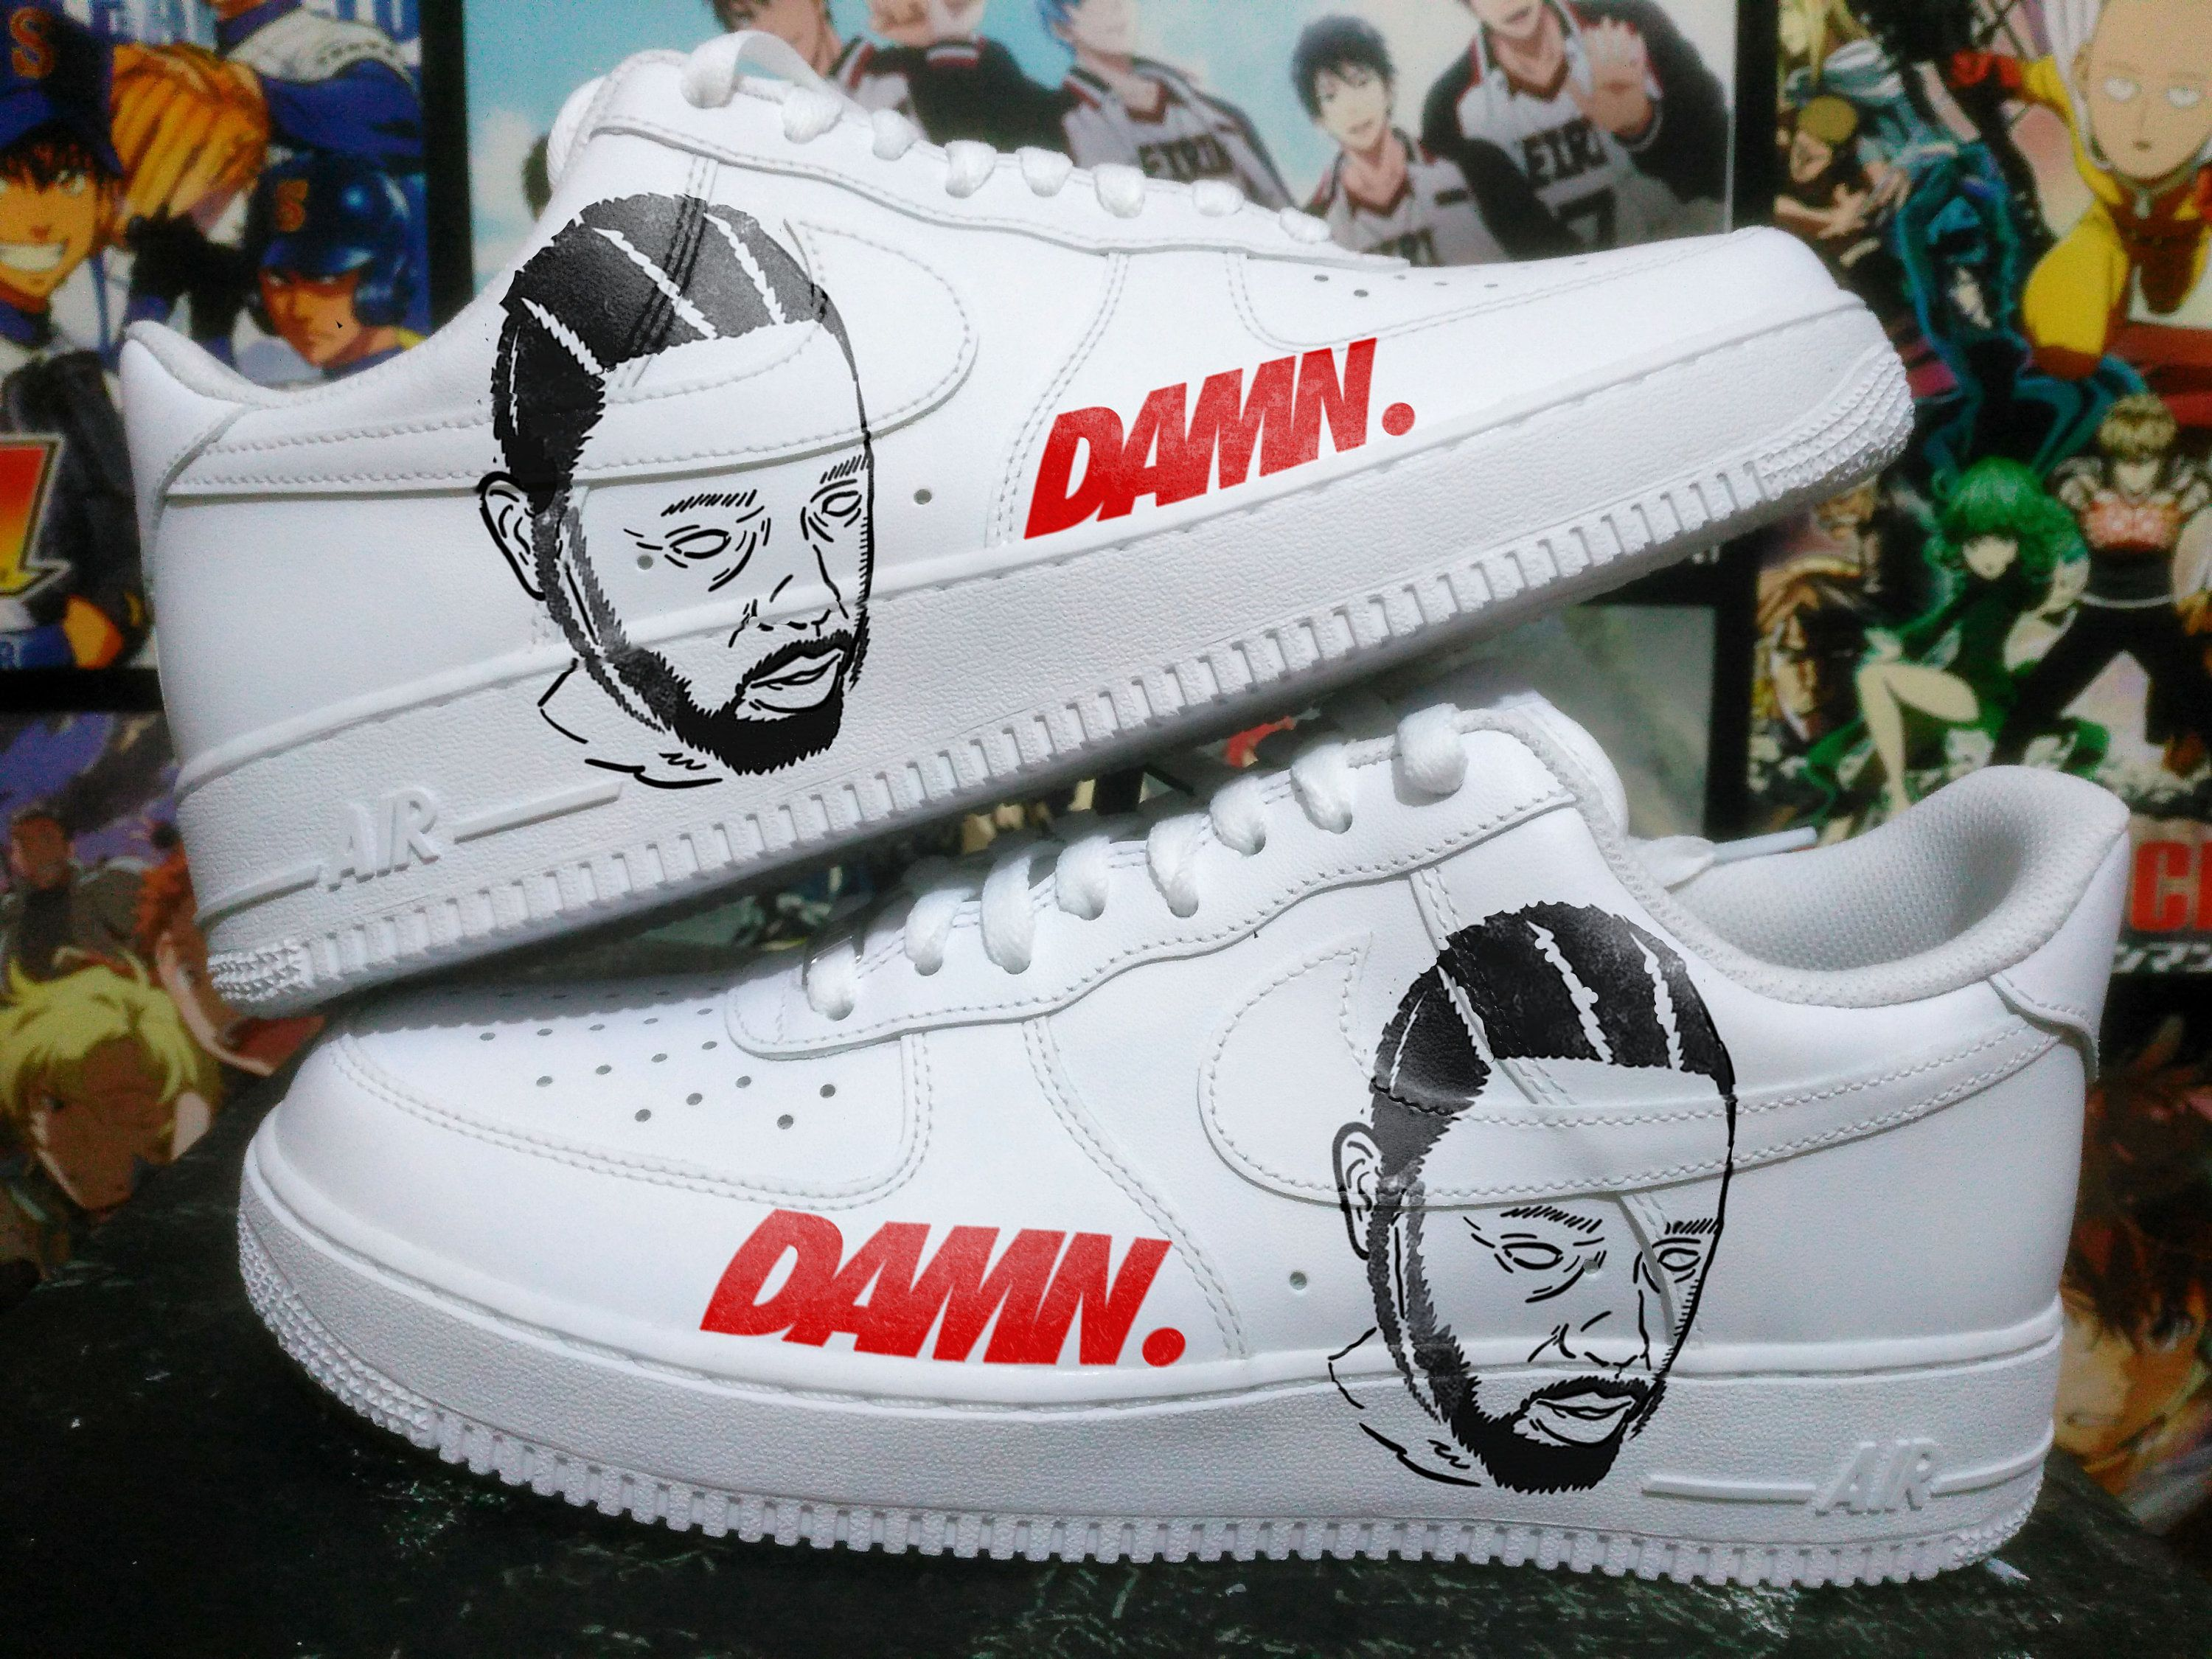 Sneakers Shoes And Custom Nike Shoes Pinterest Ron Holt On xw0qY1XTB